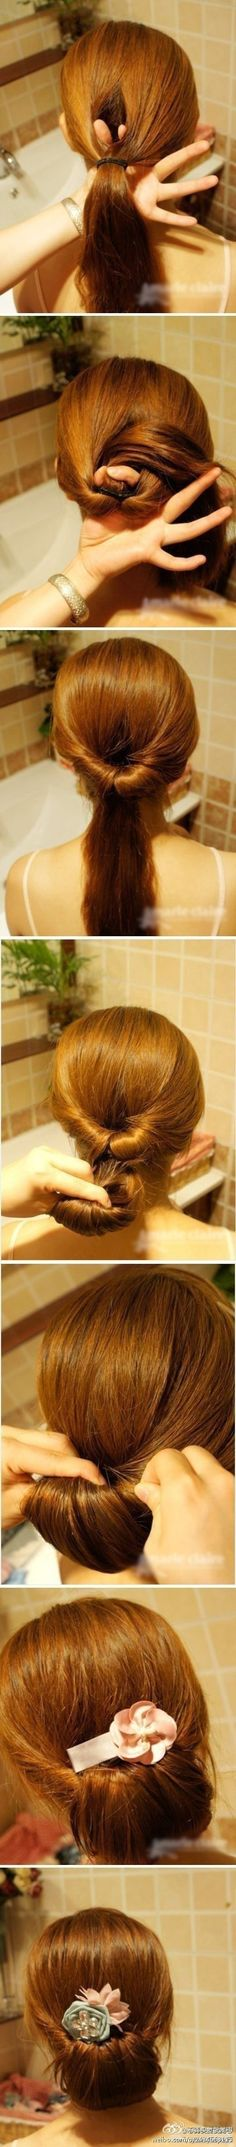 Love Easy natural hairstyles? wanna give your hair a new look? Easy natural hairstyles is a good choice for you. Here you will find some super sexy Easy natural hairstyles, Find the best one for you, #Easynaturalhairstyles #Hairstyles #Hairstraightenerbeauty https://www.facebook.com/hairstraightenerbeauty